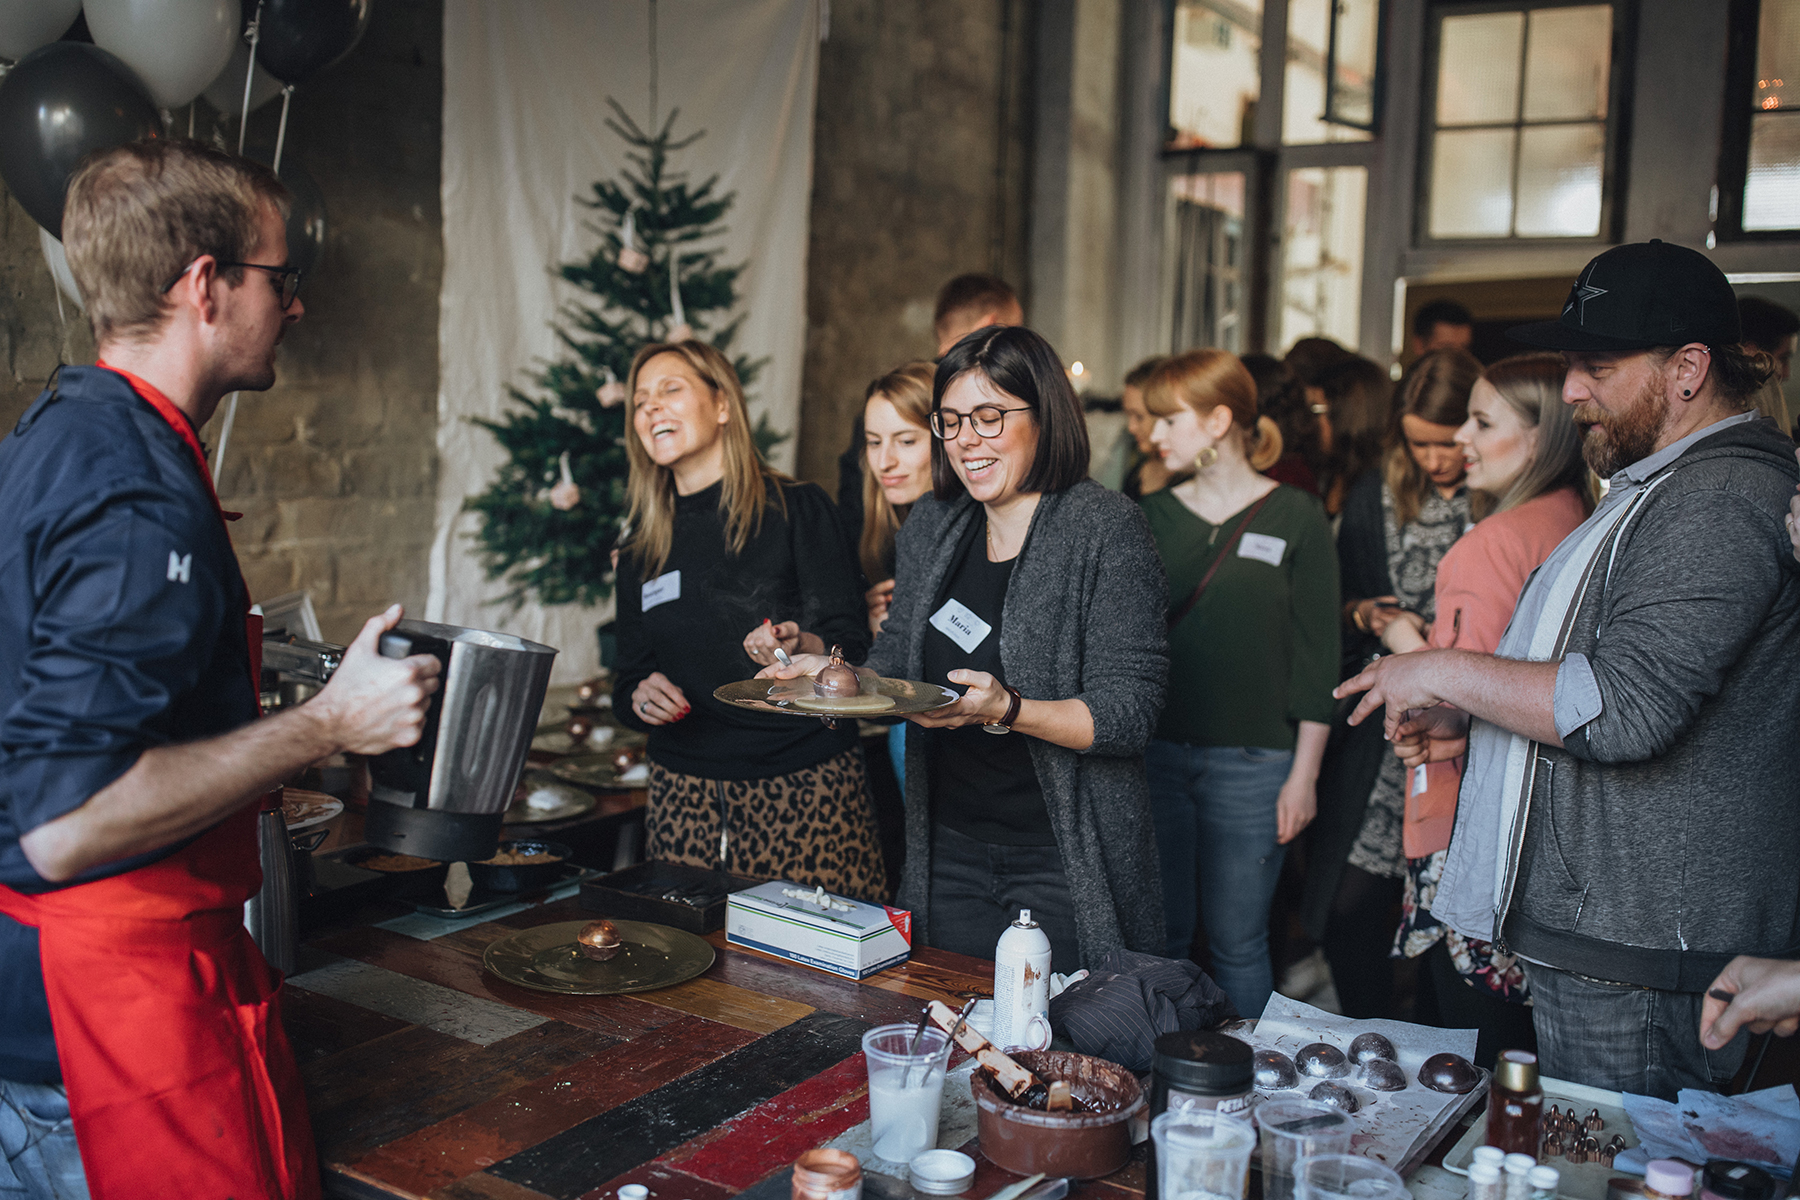 Bloggerevent #TasteofDecember in Berlin